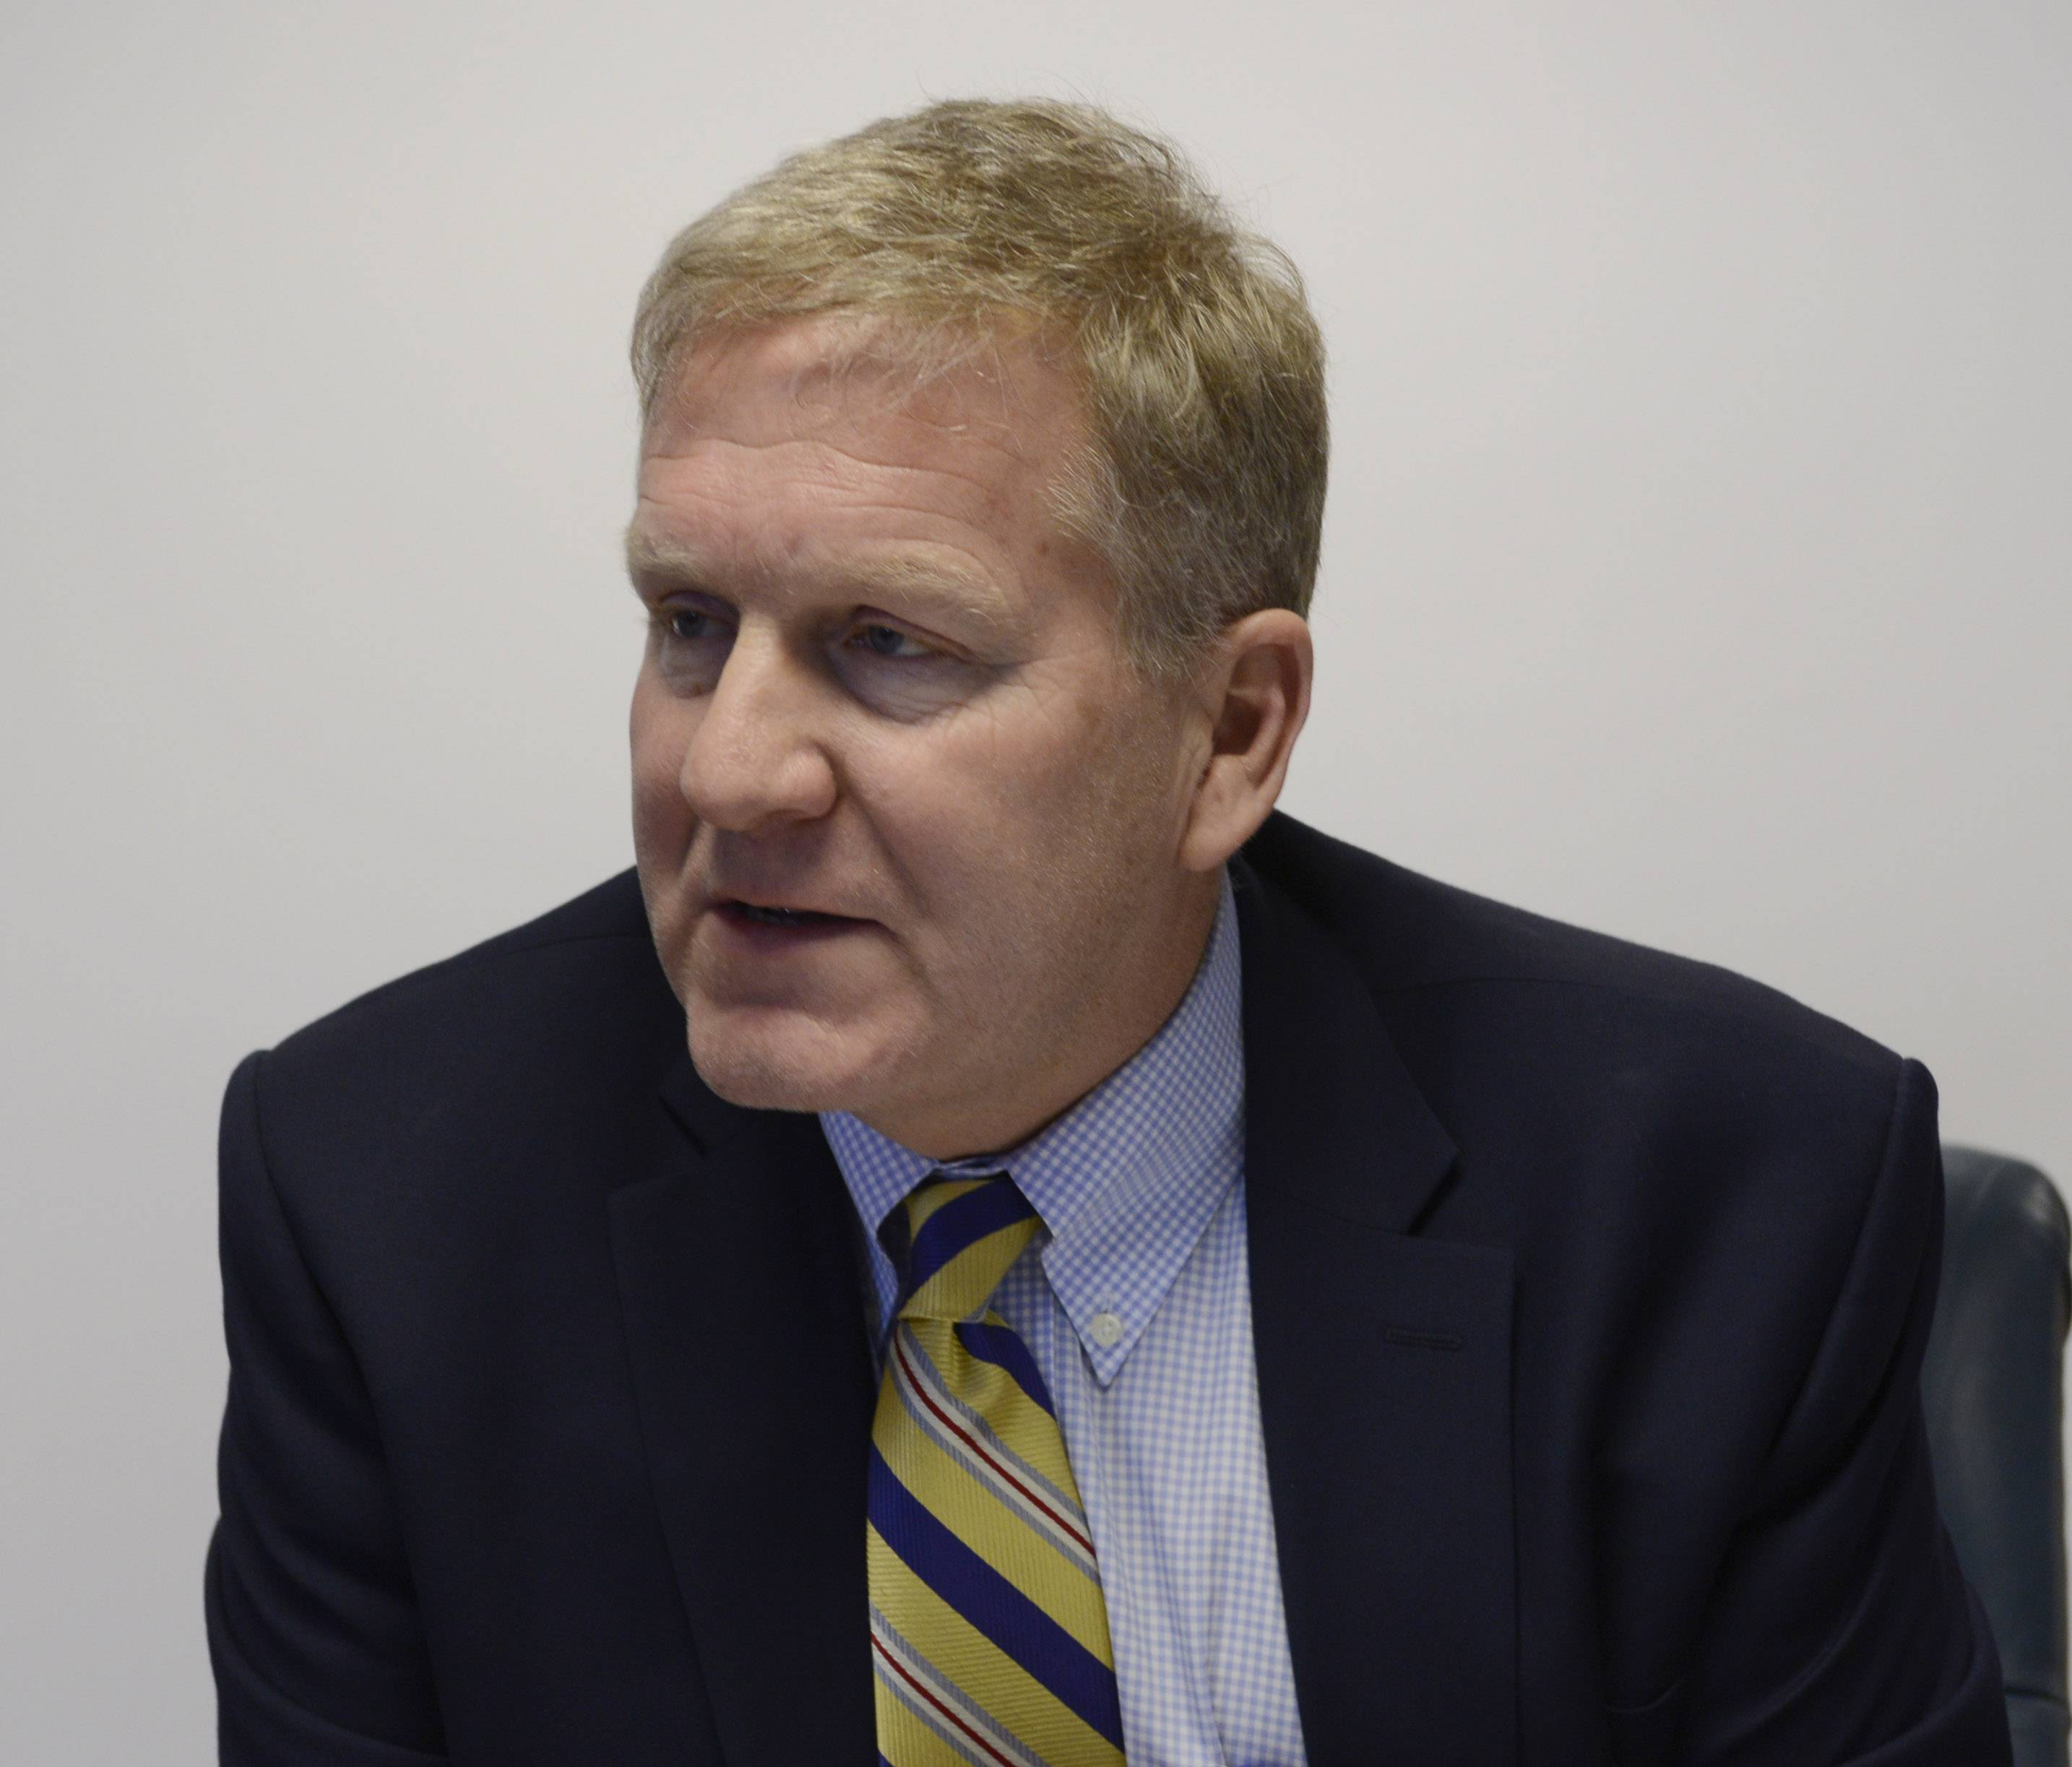 Tom Cross, who is running for Illinois treasurer in the Republican primary March 18, answers a question posed by the Daily Herald editorial board.